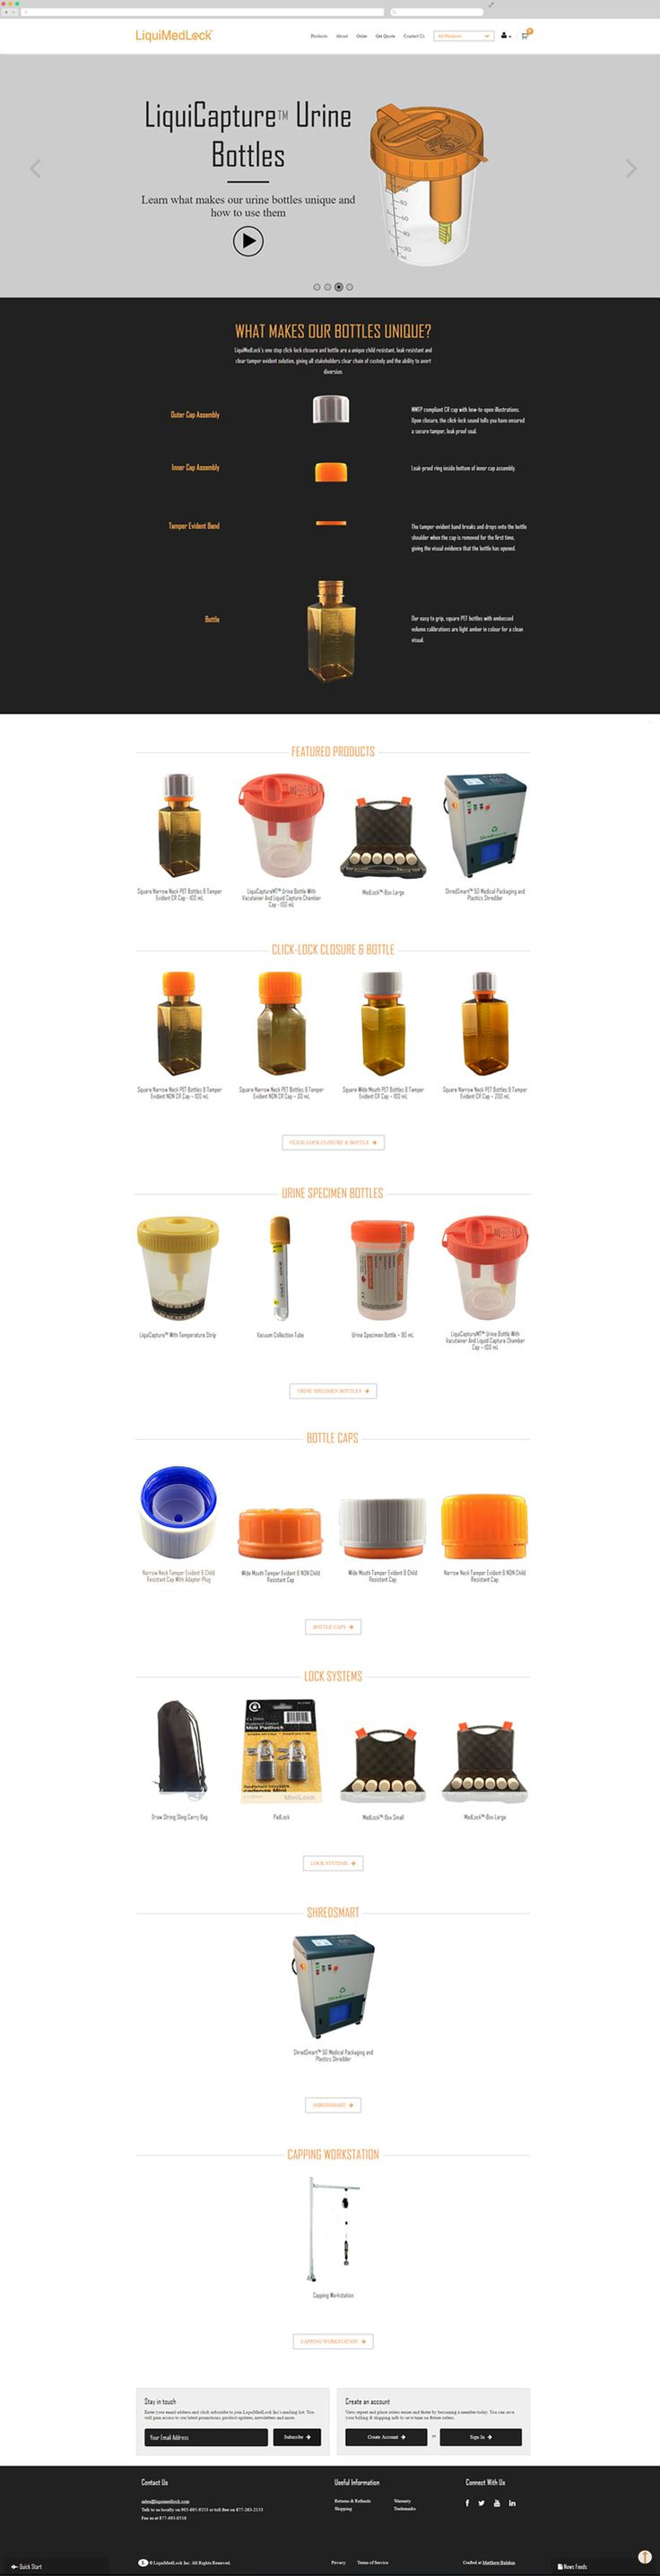 LiquiMedLock Compliance Packaging Website